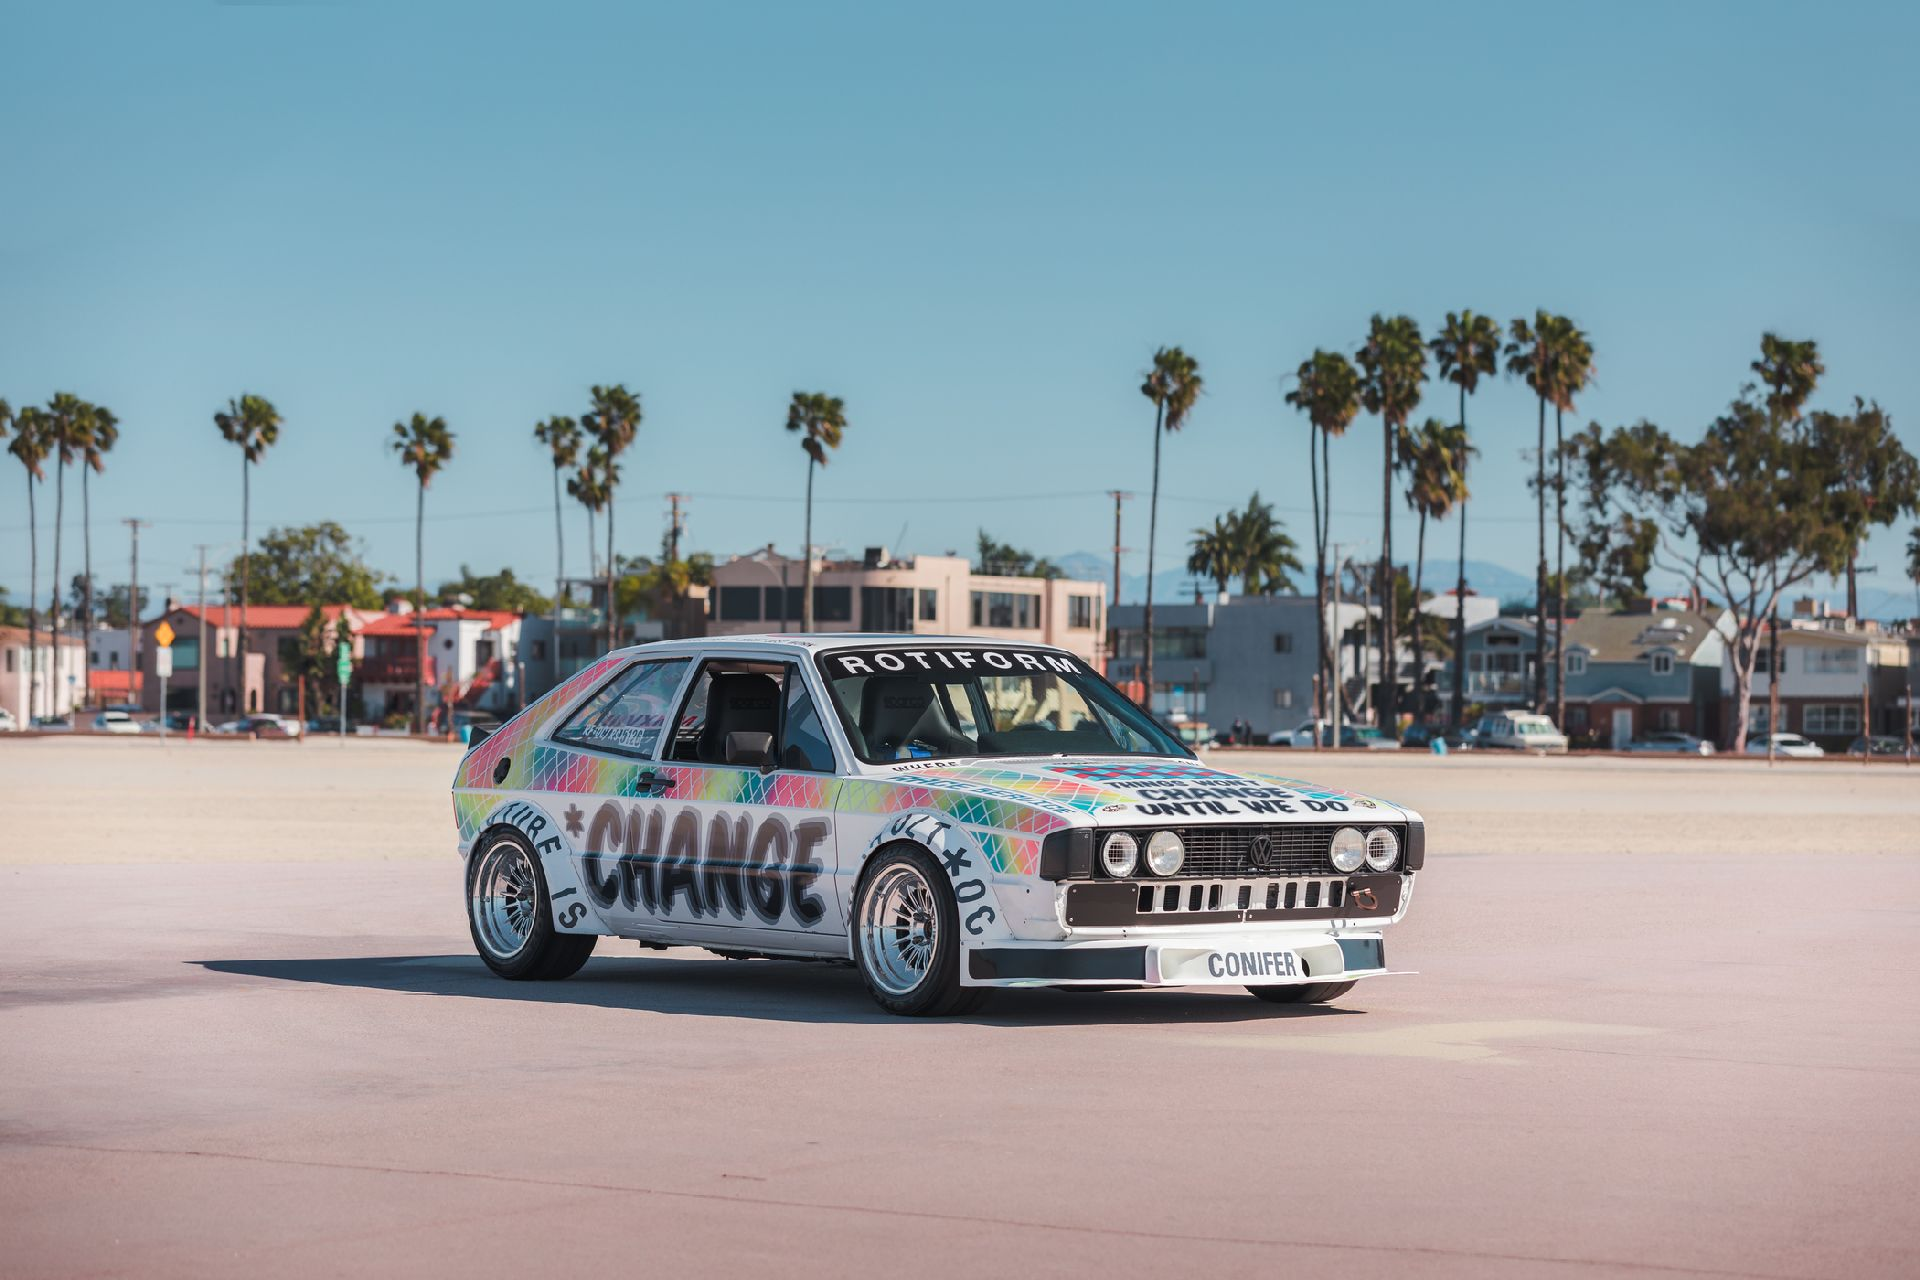 Jason Whipple, the owner of a wheel shop in California, has spent more than ten years restoring and upgrading this unique car, which he calls 'Million Dollar Scirocco'